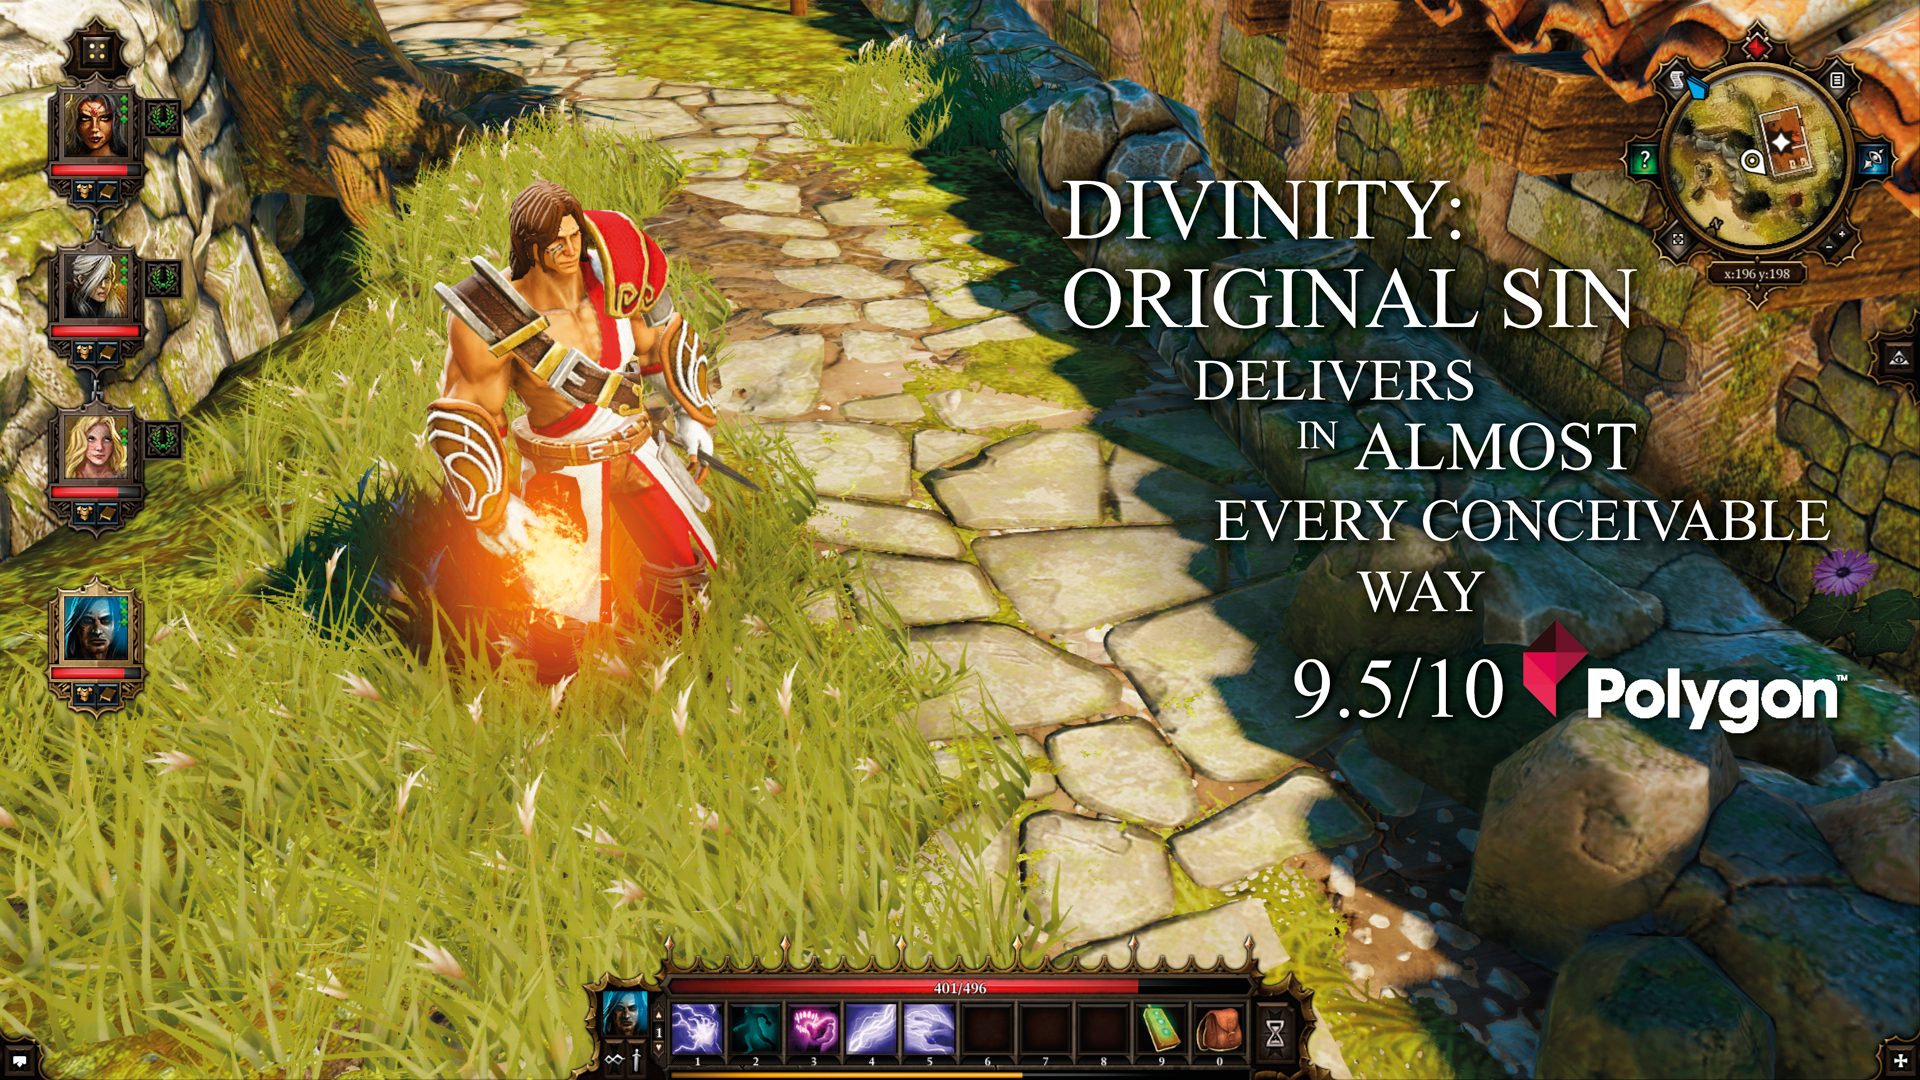 Divinity: Original Sin (Enhanced Edition) screenshot 2